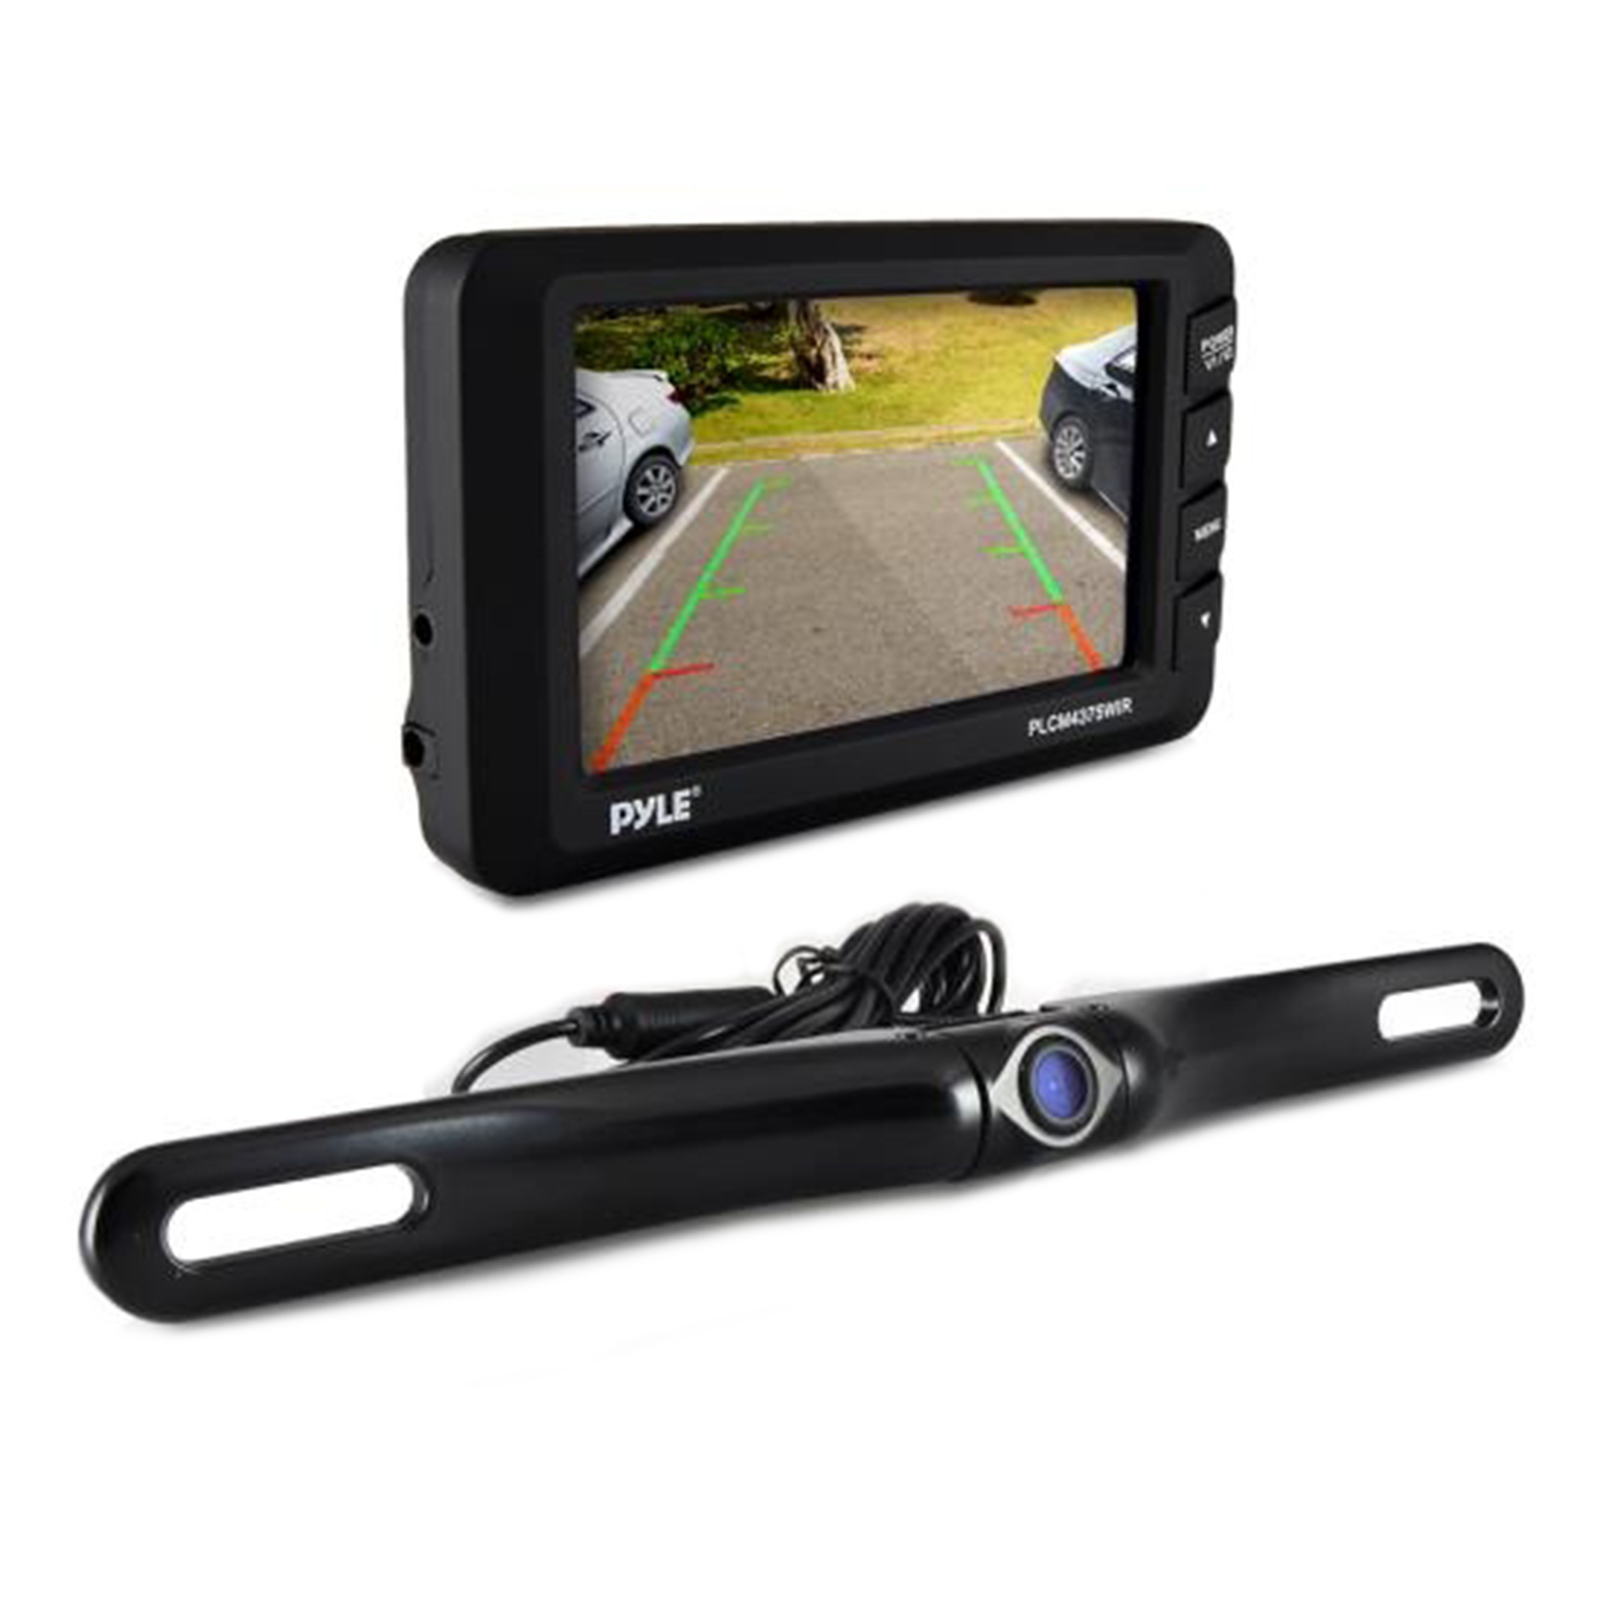 "cord free Rear View Back-up Camera & Monitor Parking/Reverse Assist System, 4.3"" Display, Distance Scale Lines, Night Vis Waterproof Cam, Swivel Angle Adjustable"